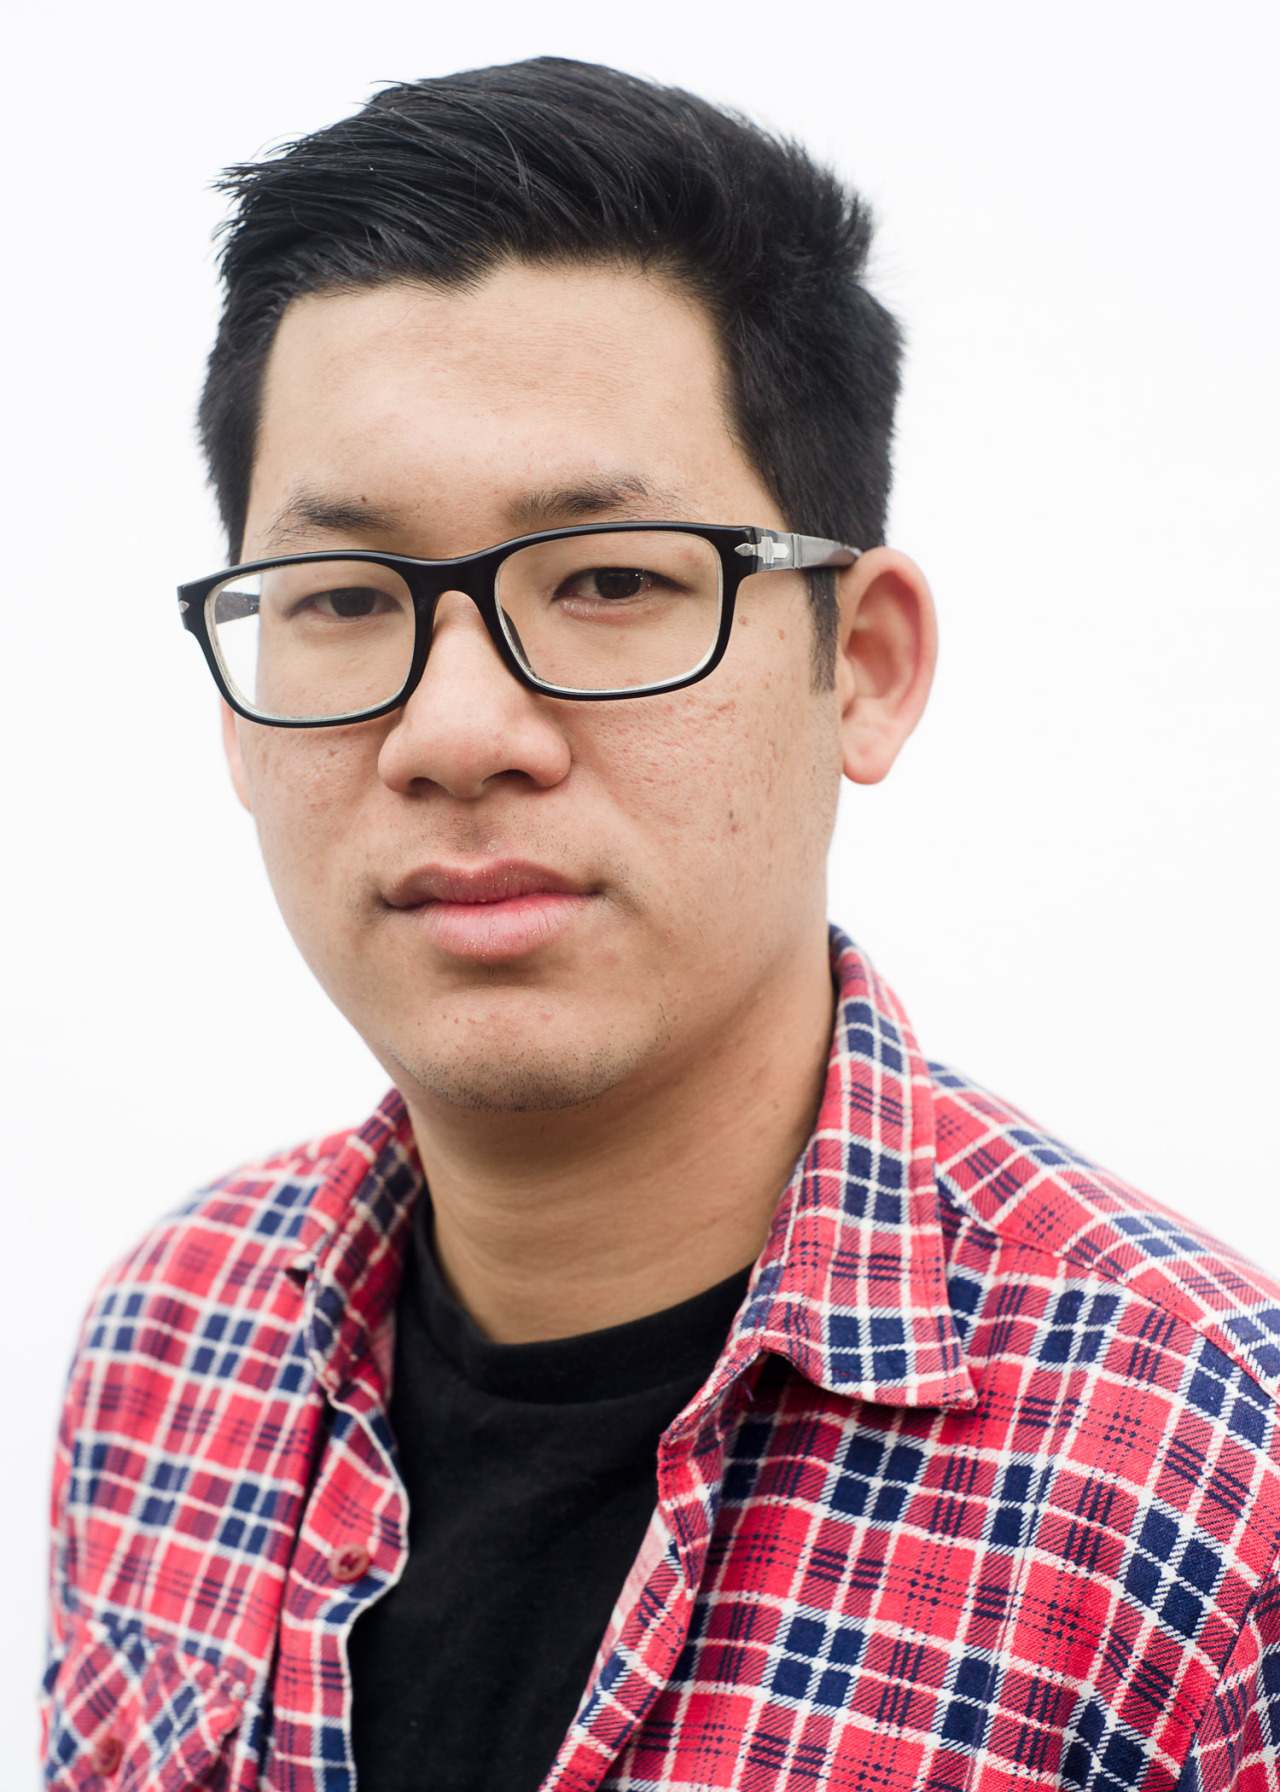 Featured Contributor: André Dao    browcontribs :     André Dao is the Editor-in-Chief of  Right Now , an online human rights magazine. His own writing has recently been published in  The Monthly ,  Meanjin  and The New Philosopher .   Read his work in TLB  13 ,  14 ,  15 ,  16 , and  17 .   Read his piece 'Tom Grant' in  TLB 21 .   Read his piece 'What's Mine Is Yours' in  TLB 22 .